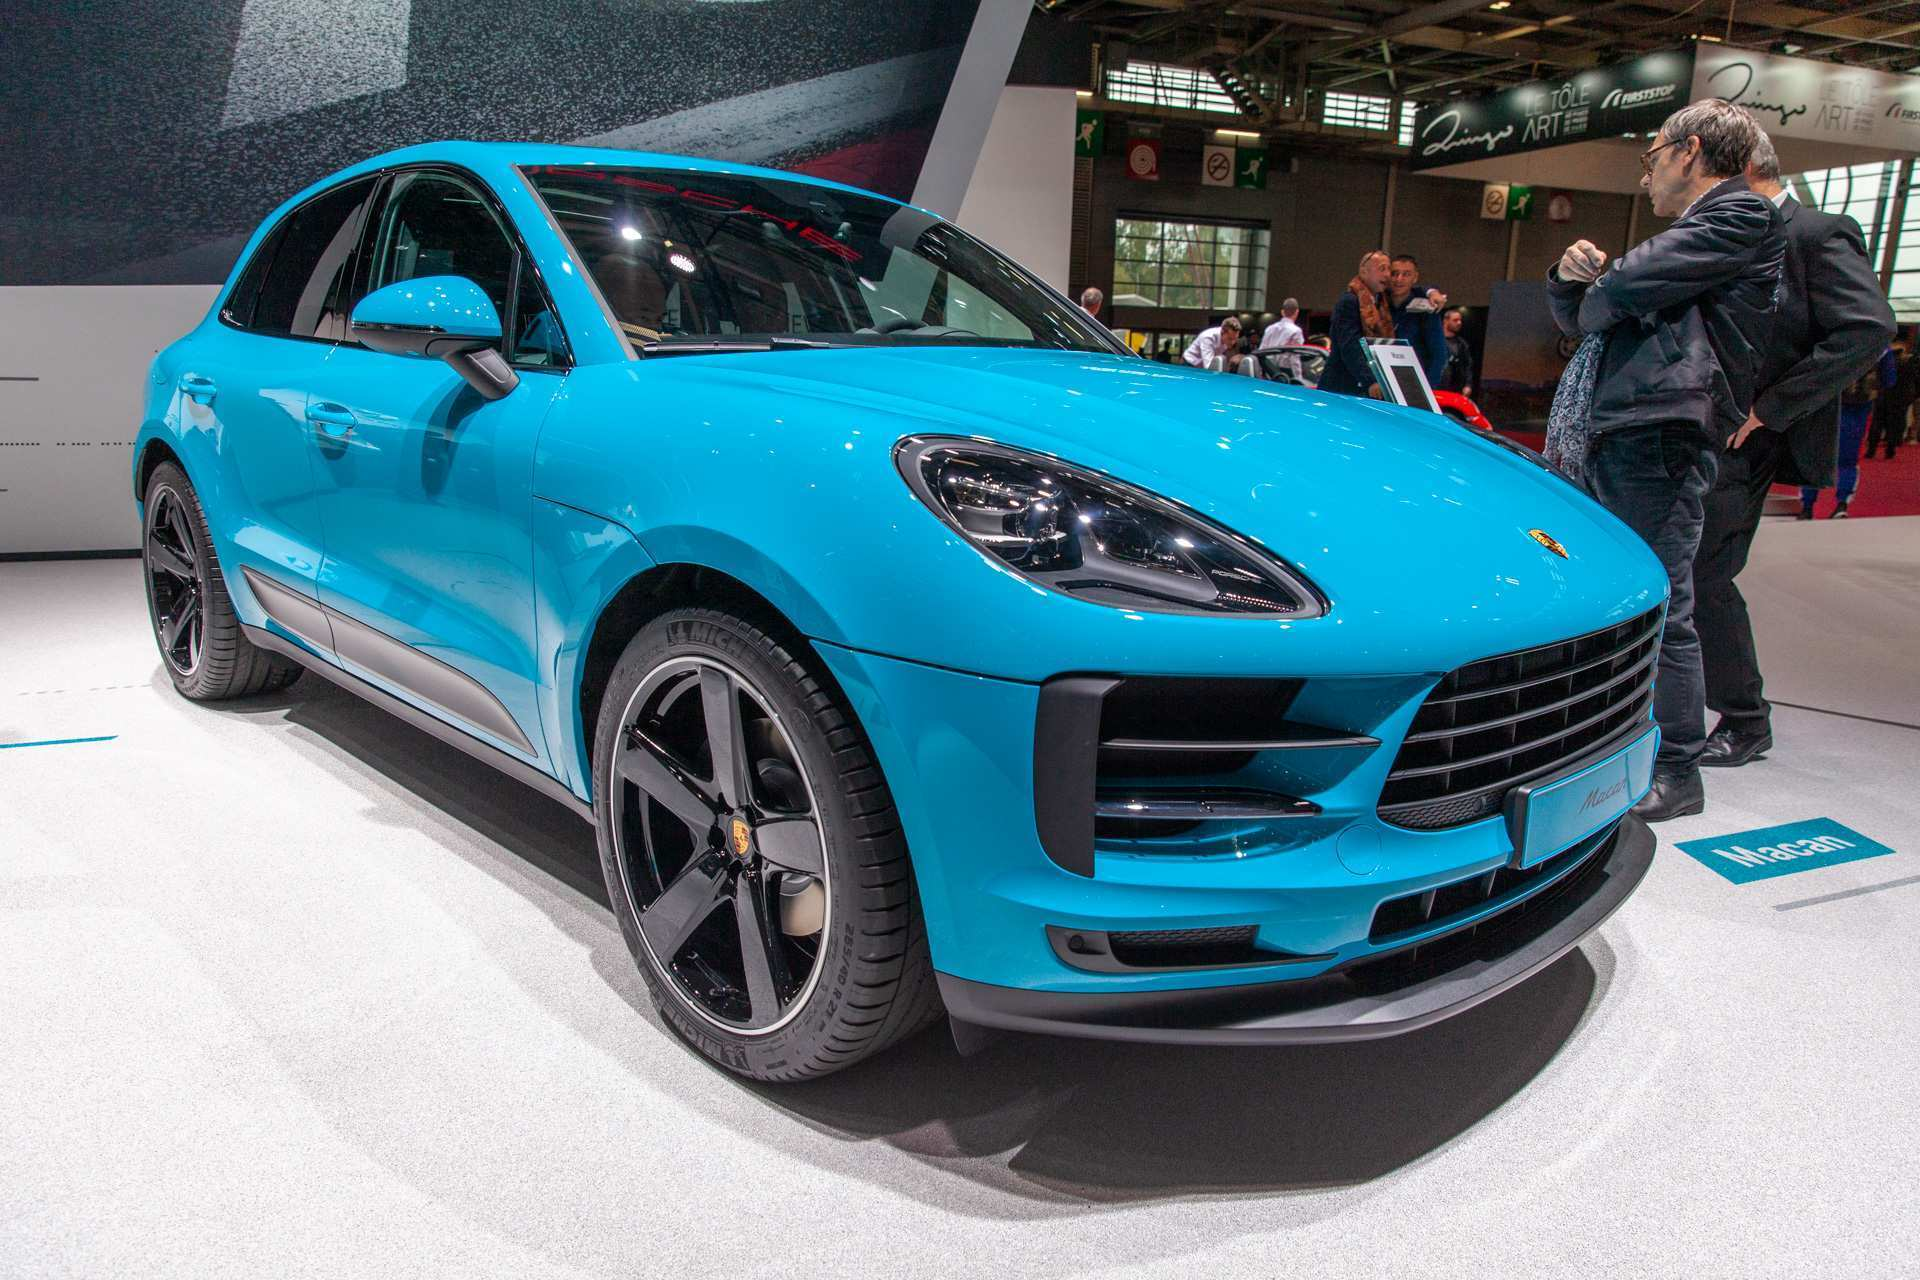 52 The Best 2020 Porsche Macan Release